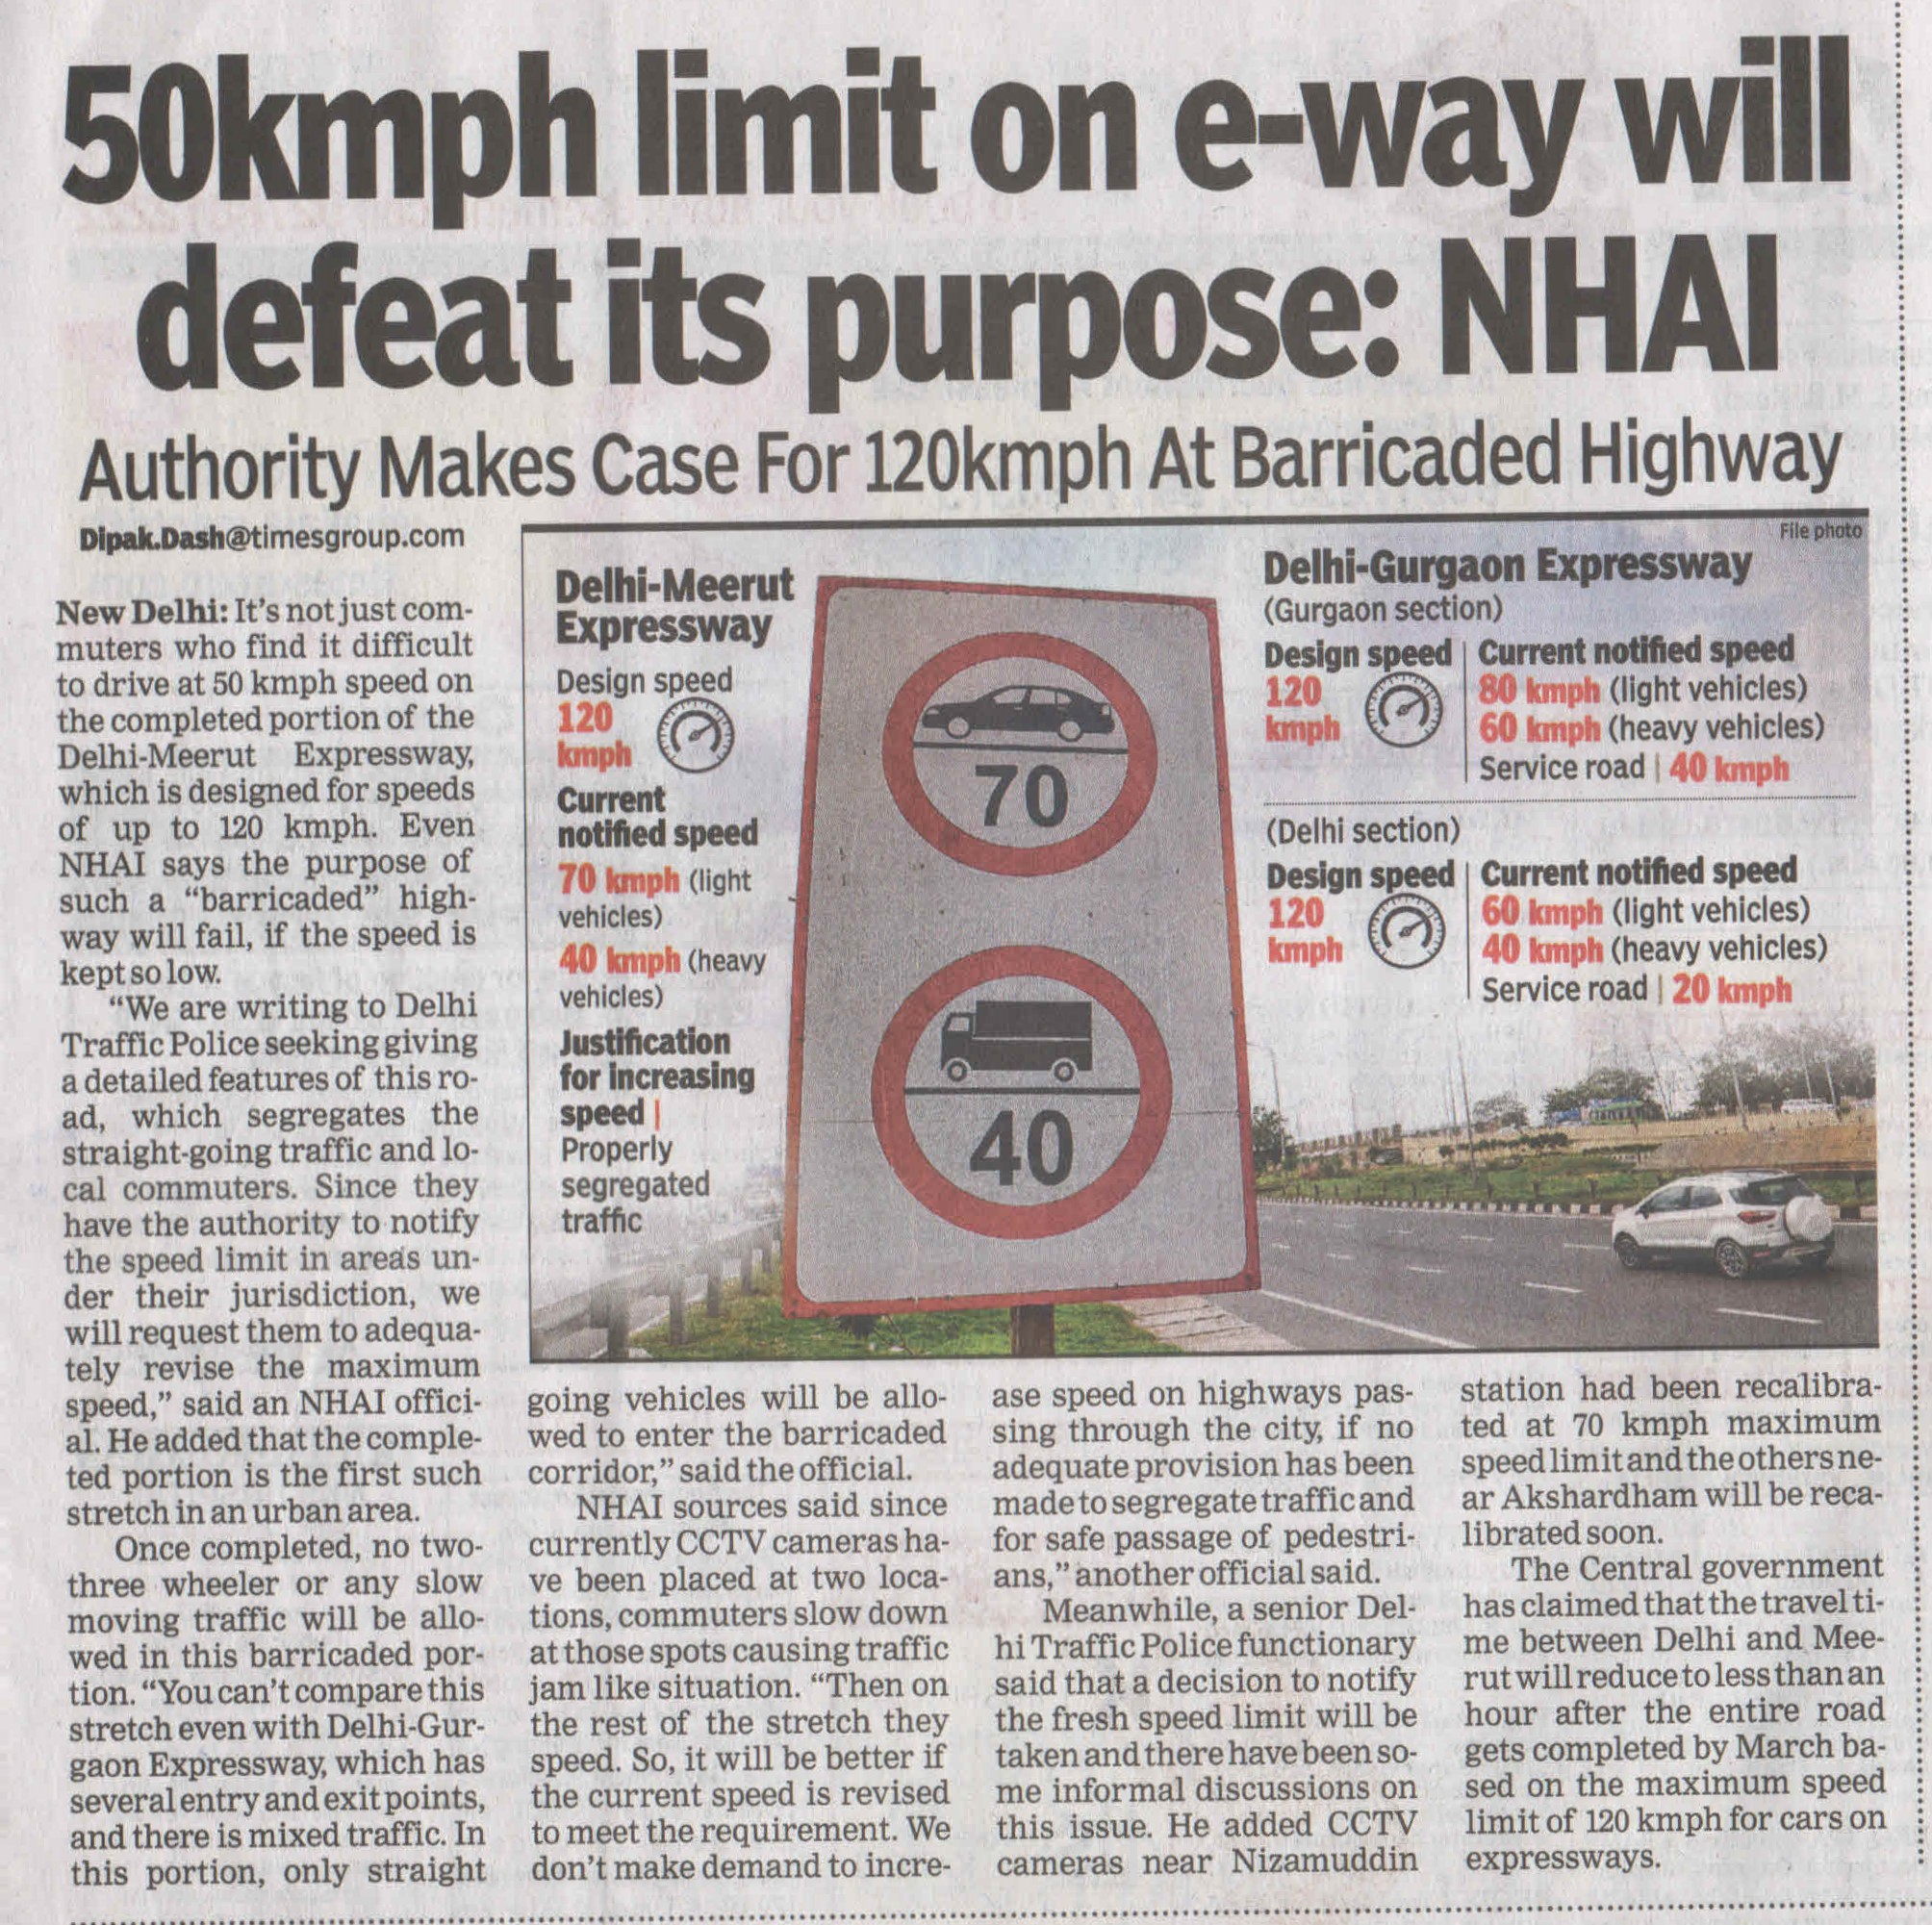 50 kmph limit on 3-way will defeat its purpose: NHAI